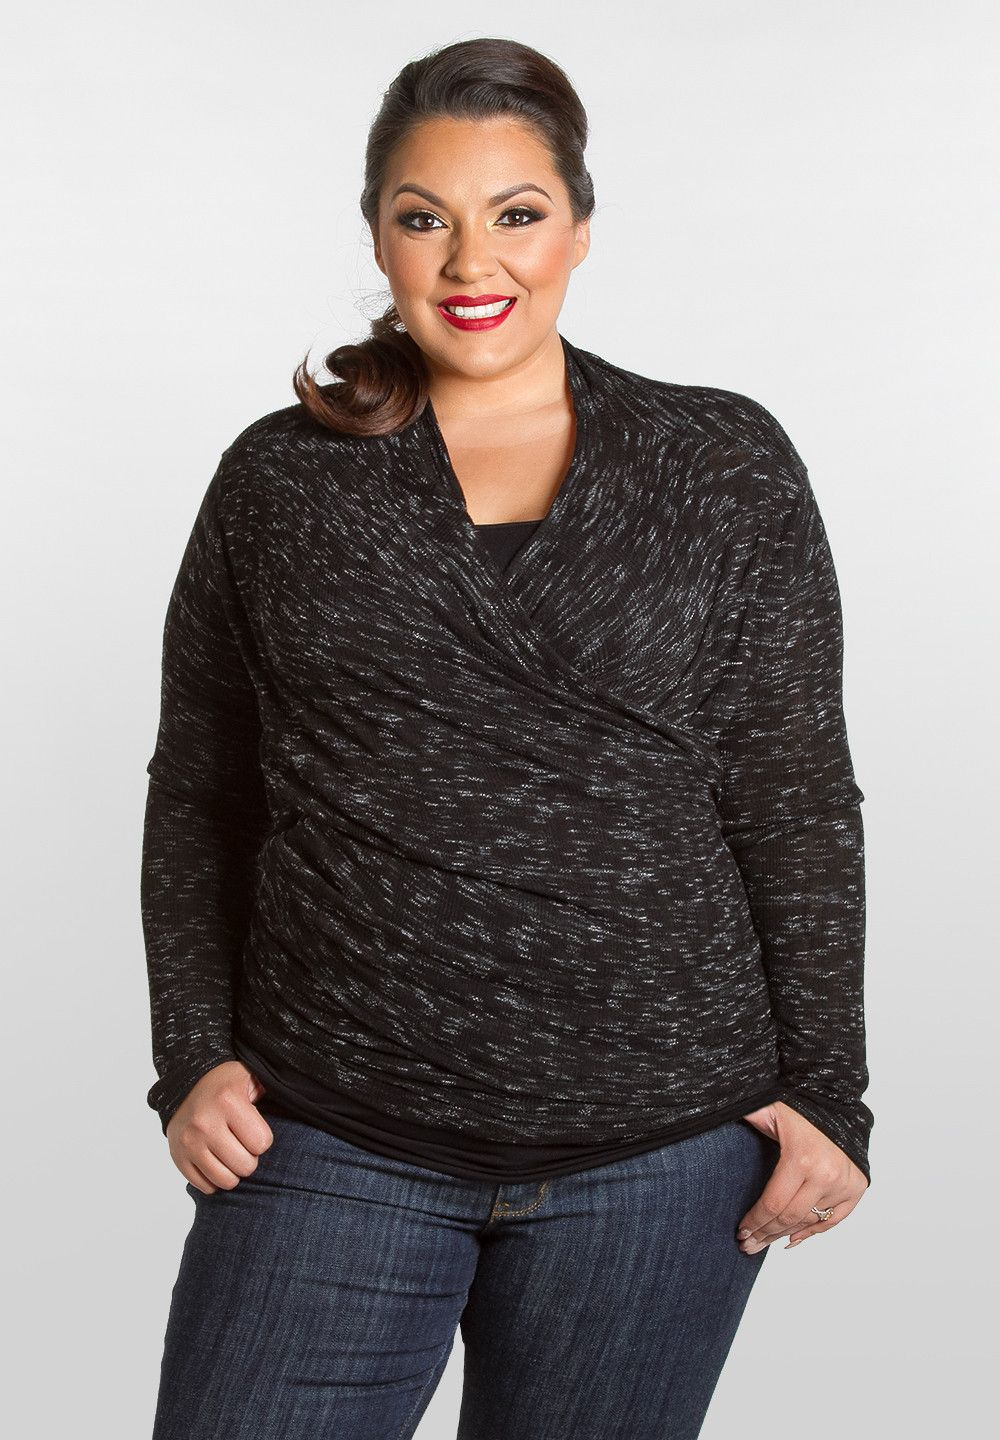 f6bb27c00b25a NEW Plus Size Lorena Wrap Cardigan - Black Size 1X-6X Shop  www.curvaliciousclothes